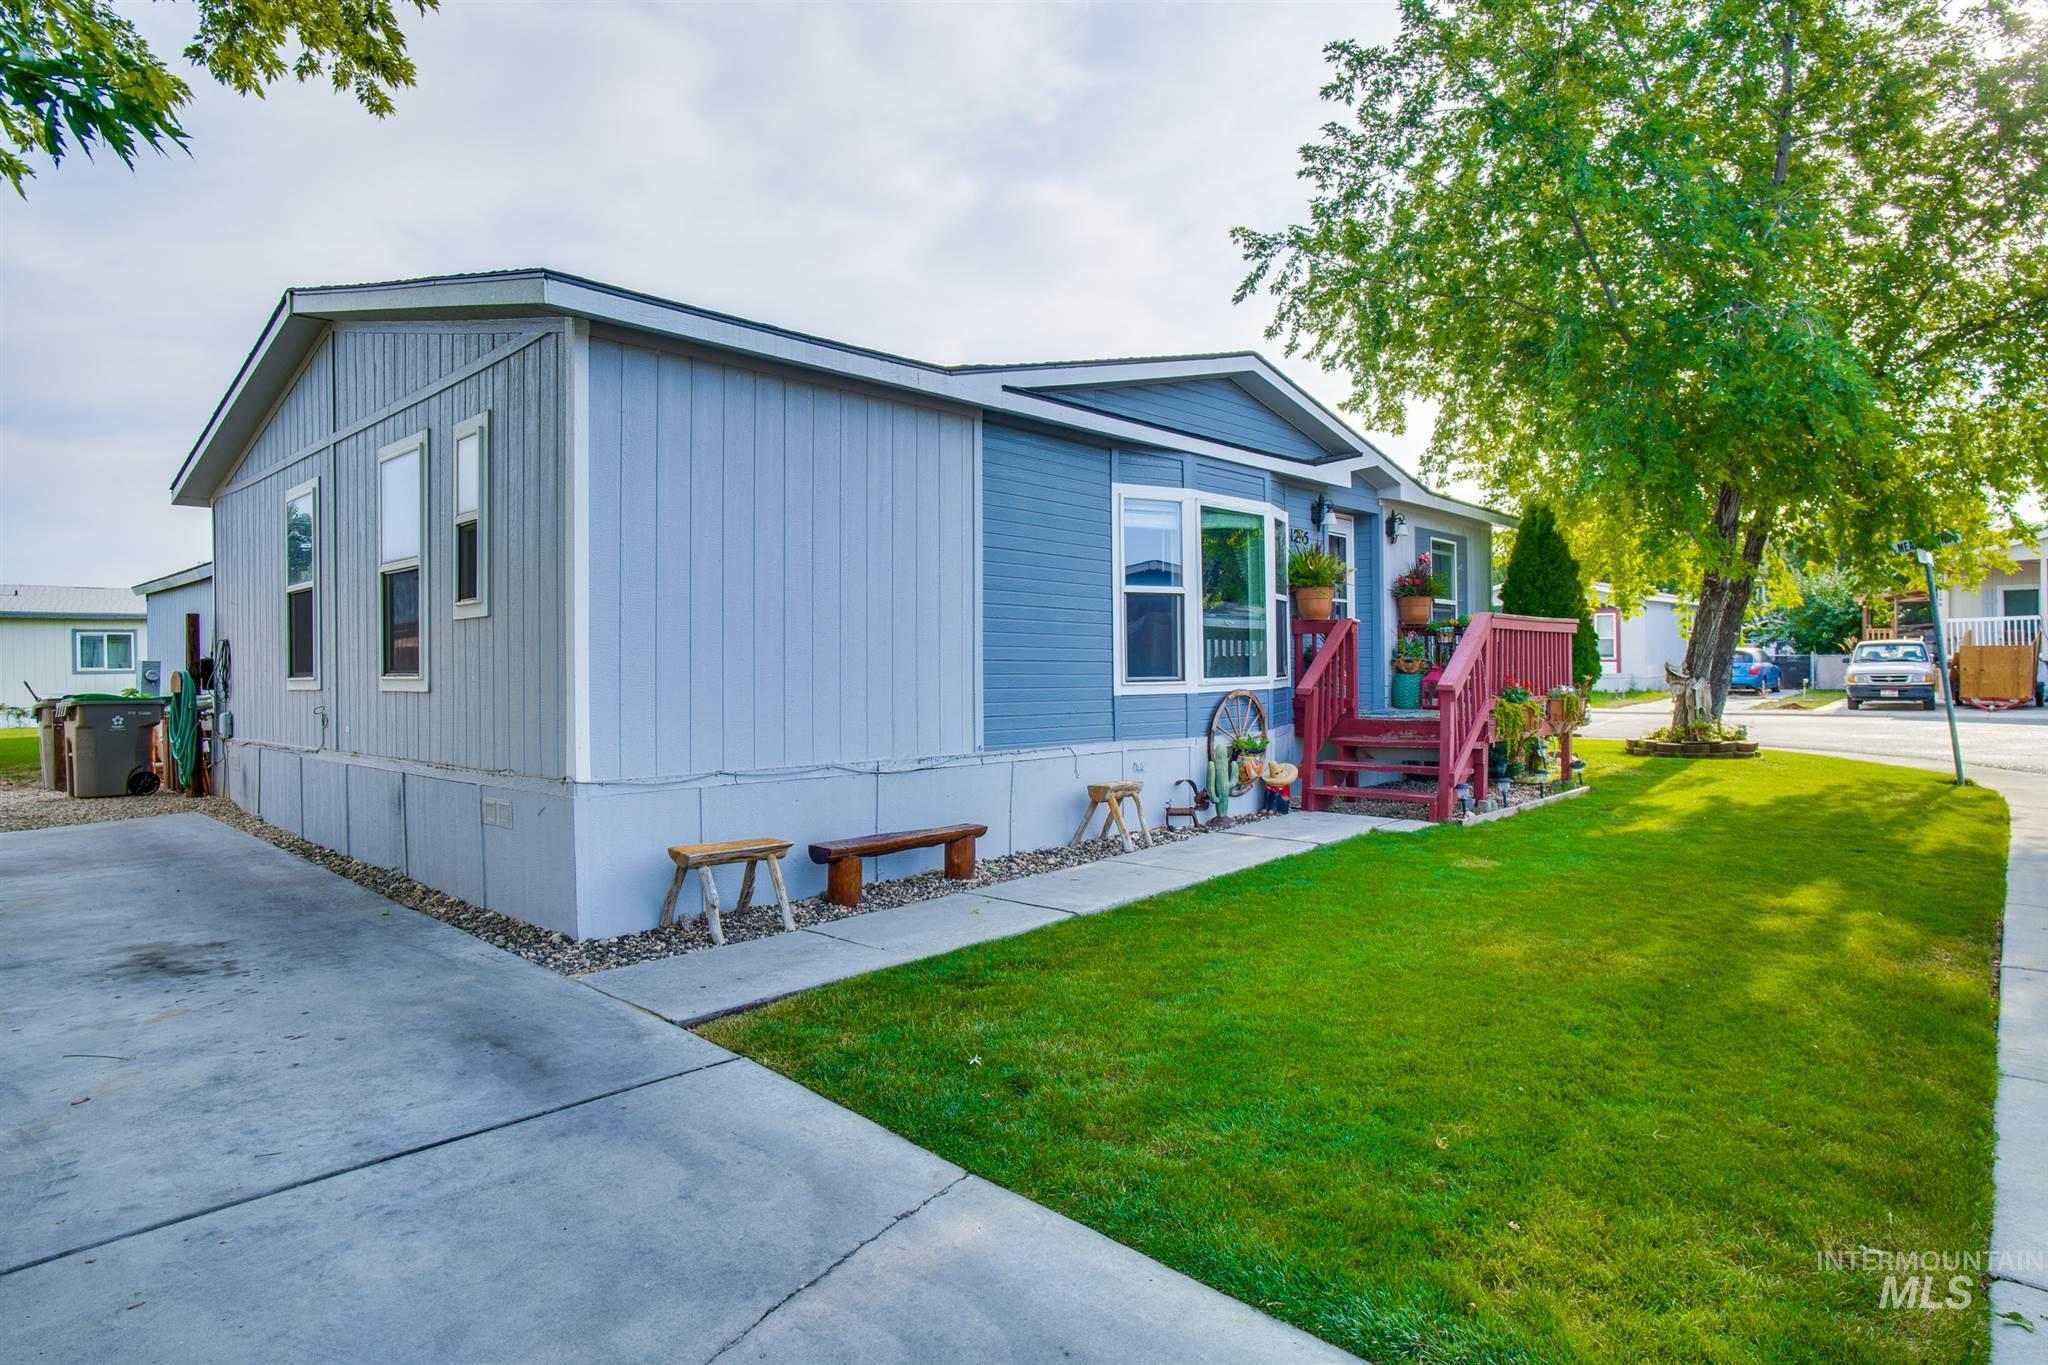 1255 N Meadowland Ln, Boise, Idaho 83713, 3 Bedrooms, 2 Bathrooms, Residential For Sale, Price $89,500, 98777985